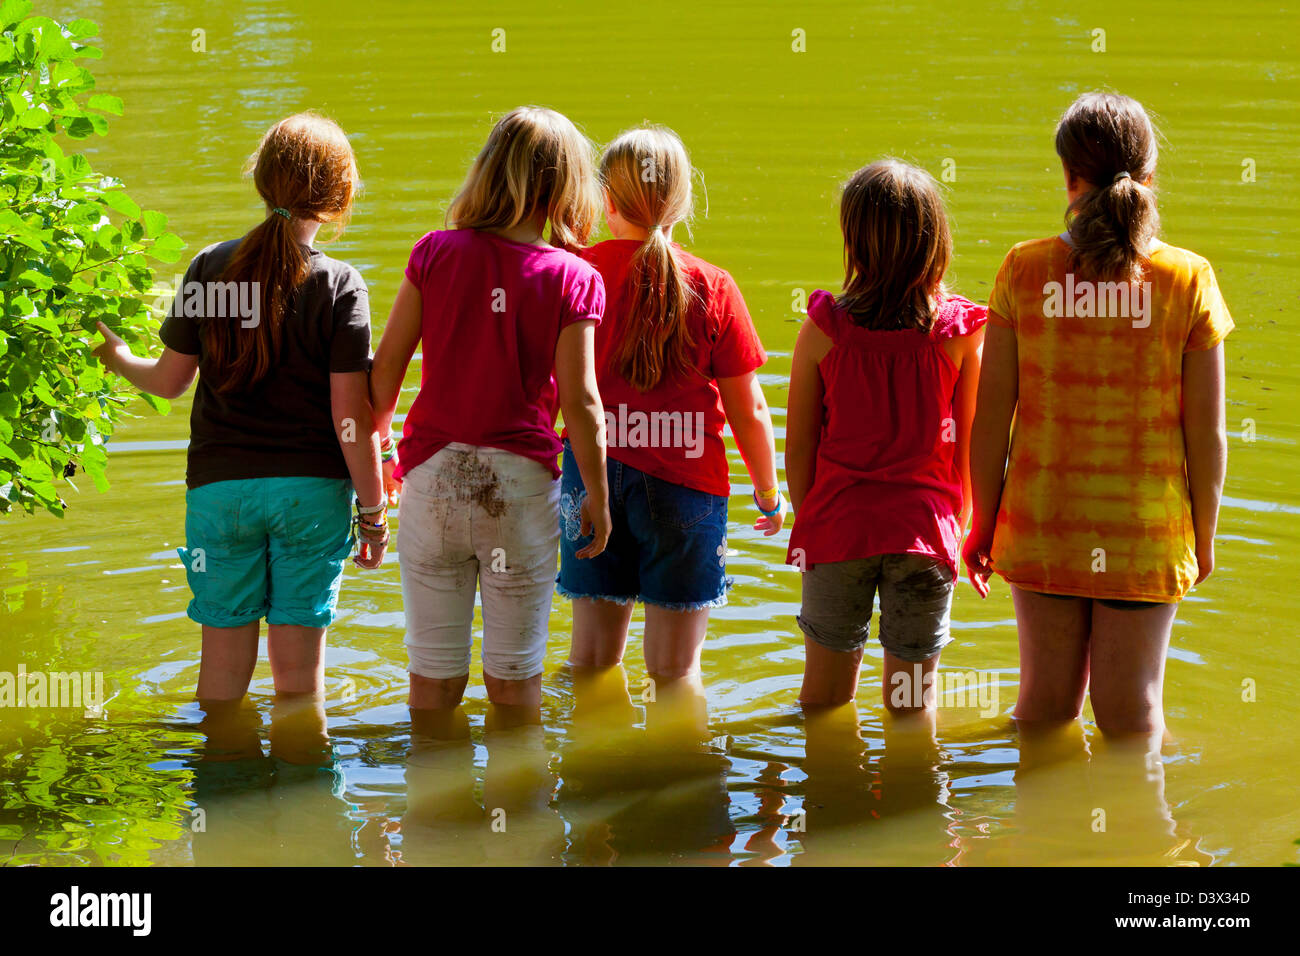 Group of five girls paddling in a lake on a hot summer day and looking out across the water - Stock Image